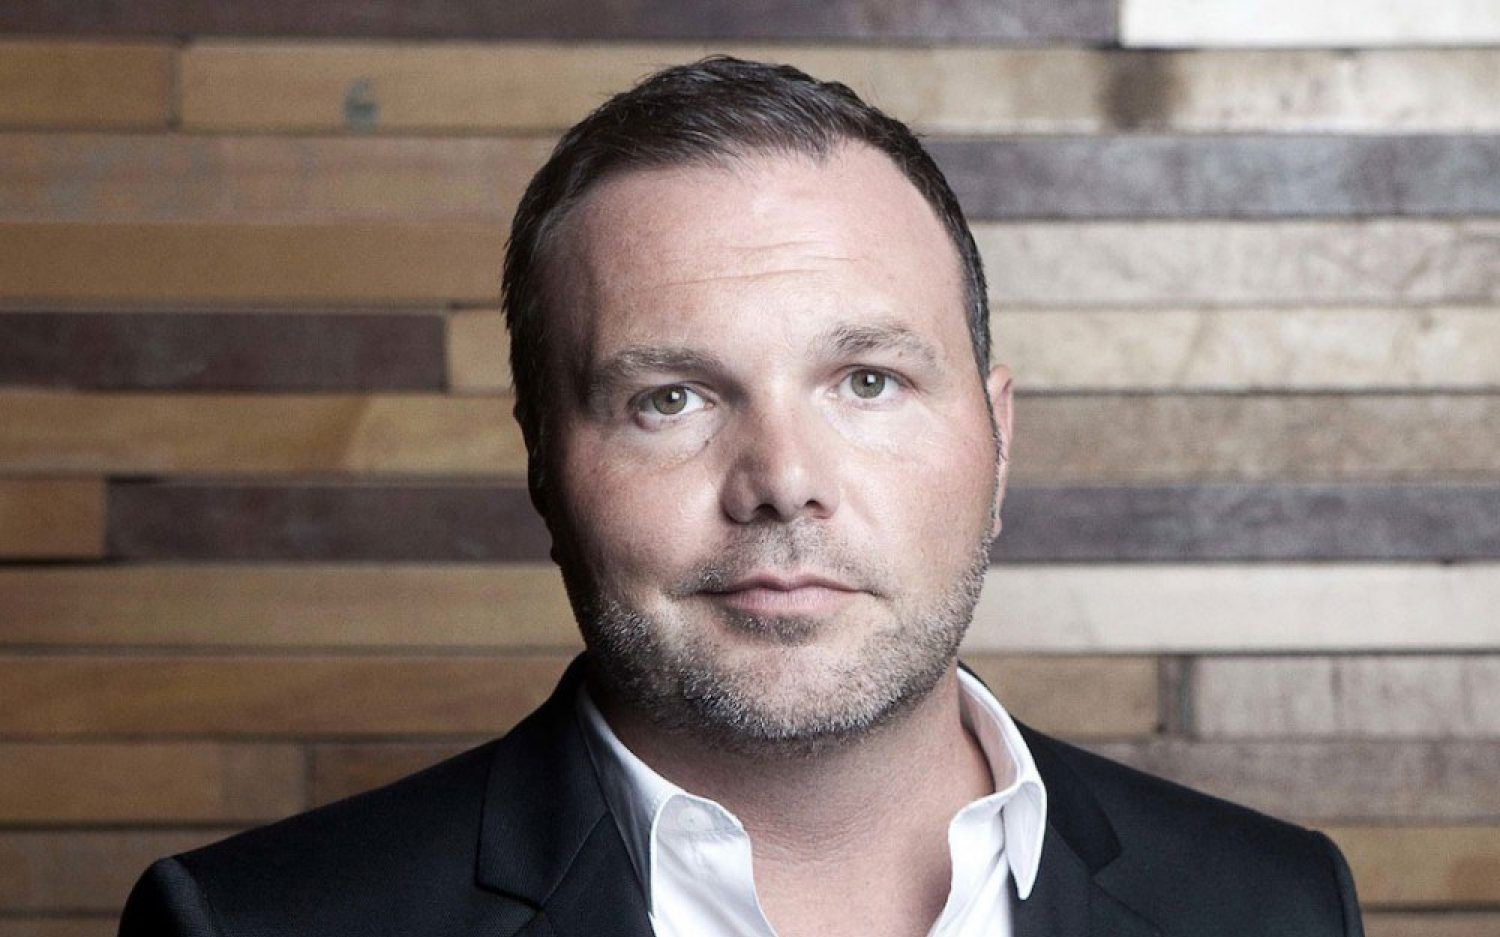 Acts 29 to Mark Driscoll: Resign and seek help